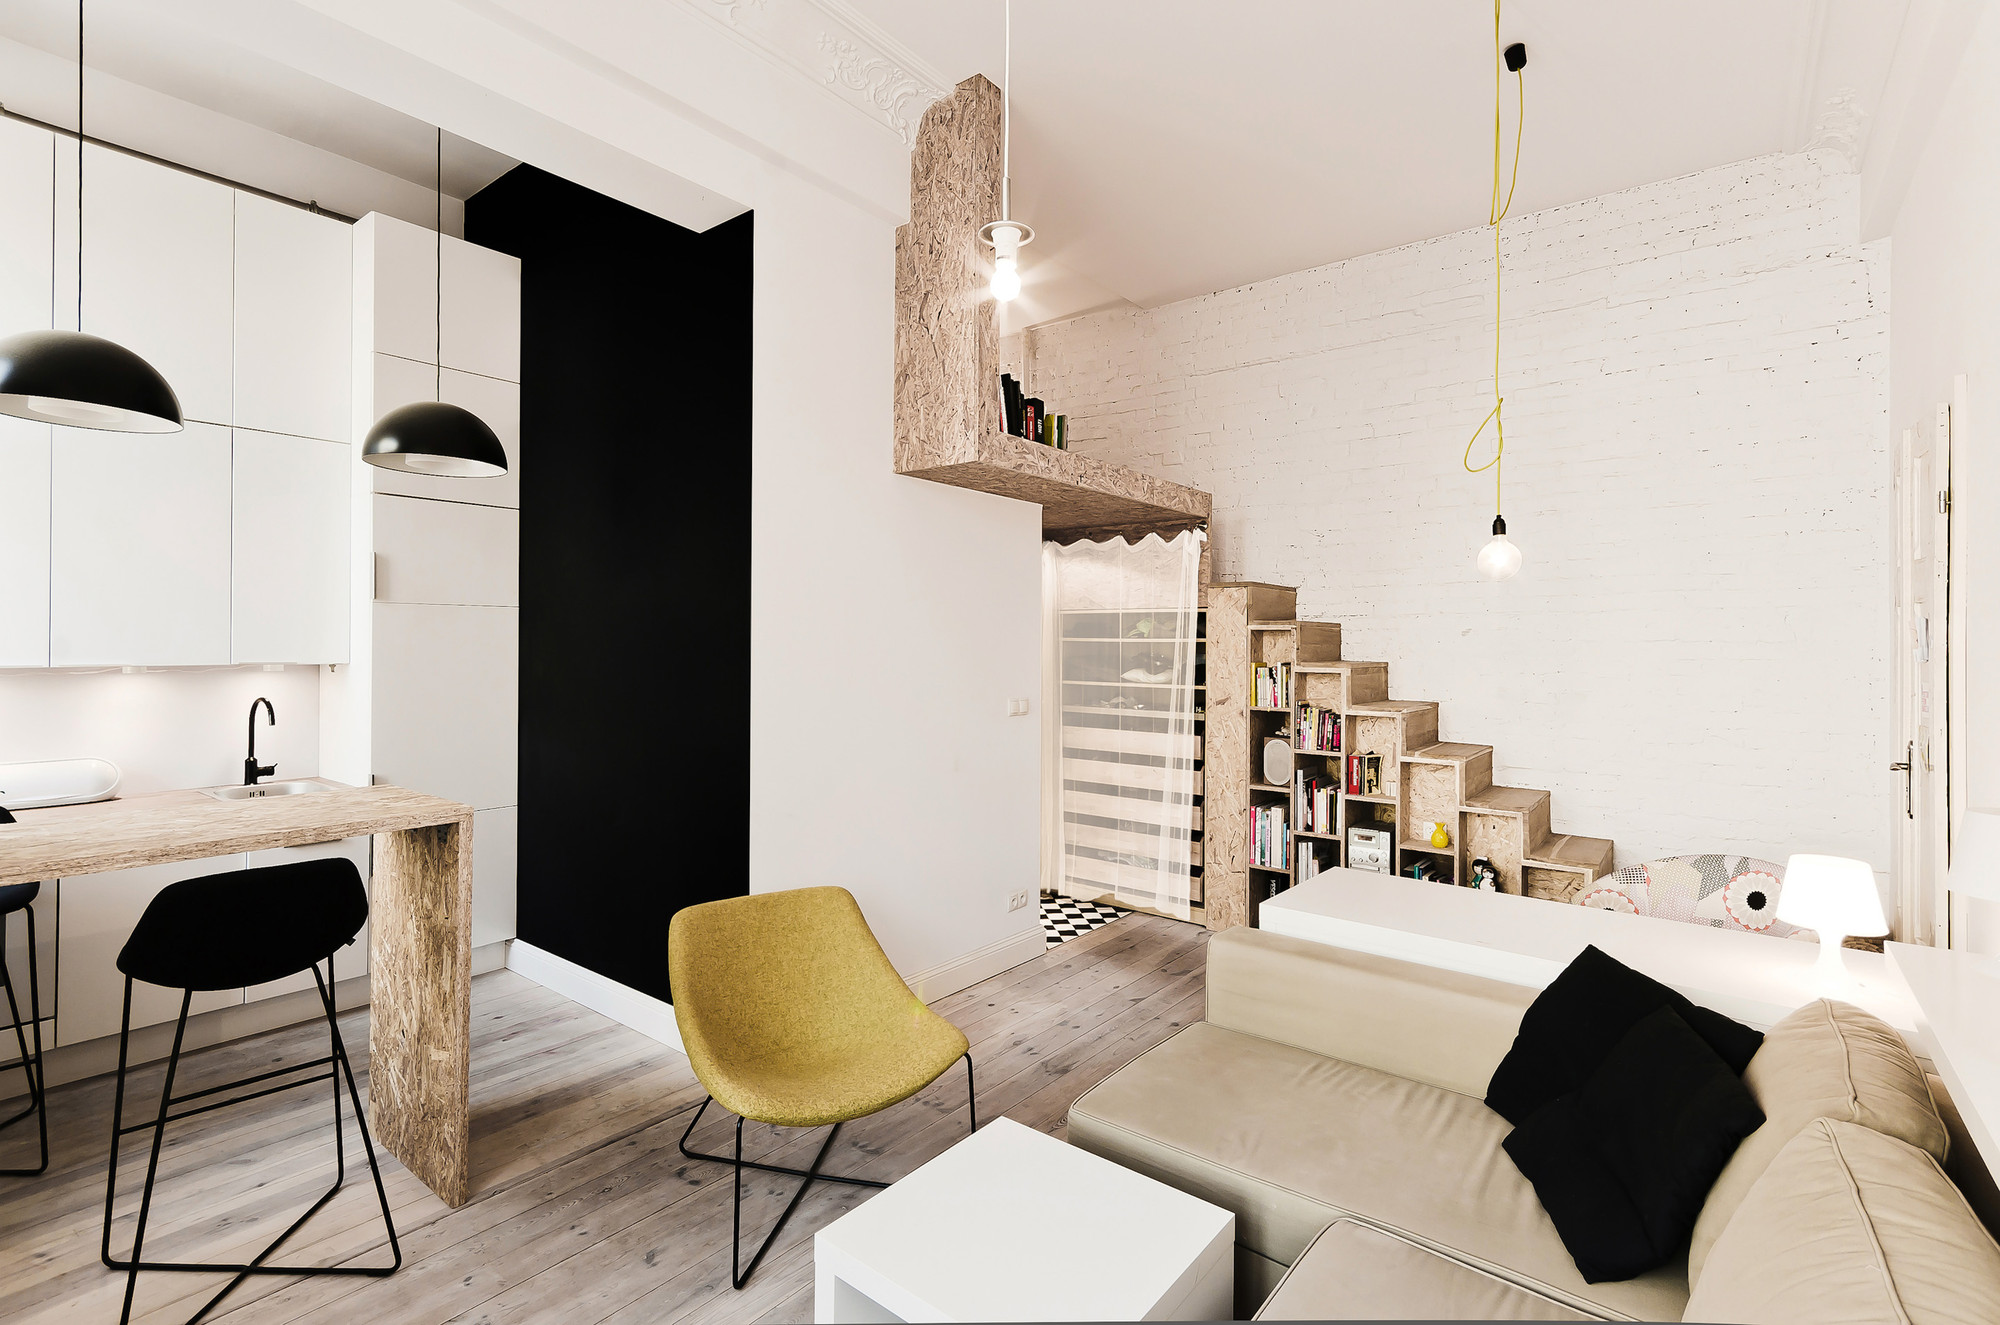 29 sqm 3xa 3 OSB Was Used To Build a Mezzanine in This Tiny 29m² Apartment